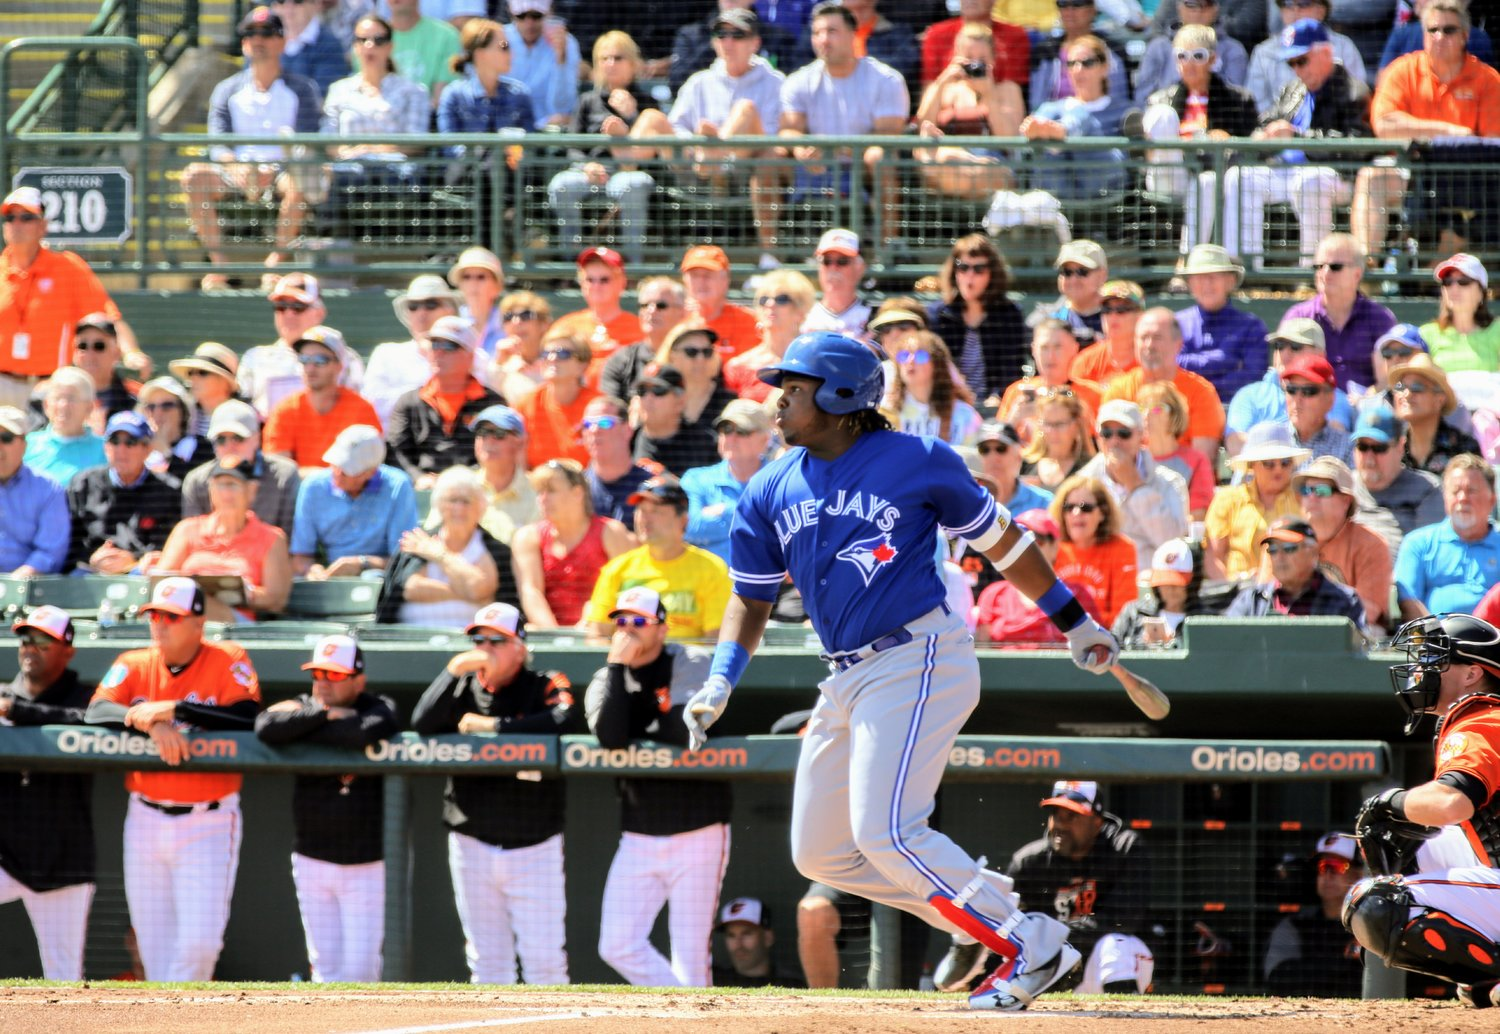 Toronto Blue Jays young slugger Vladimir Guerrero Jr. (Montreal, Que.) has been named the American League Player of the Week. Photo: Amanda Fewer